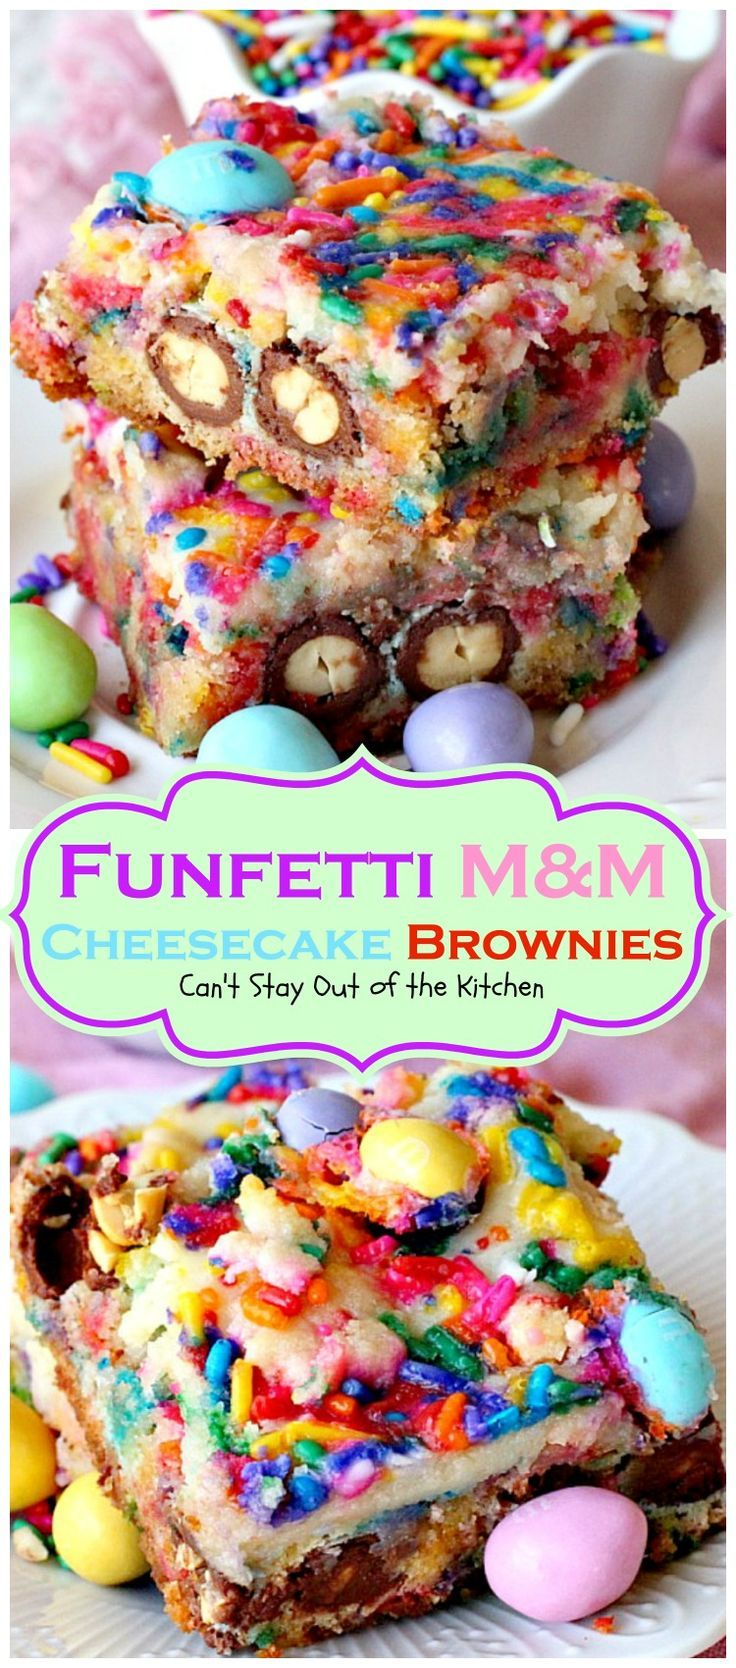 Funfetti M&M Cheesecake Brownies are filled with peanut butter M&M's, rainbow sprinkles & cheesecake filling. Amazing!